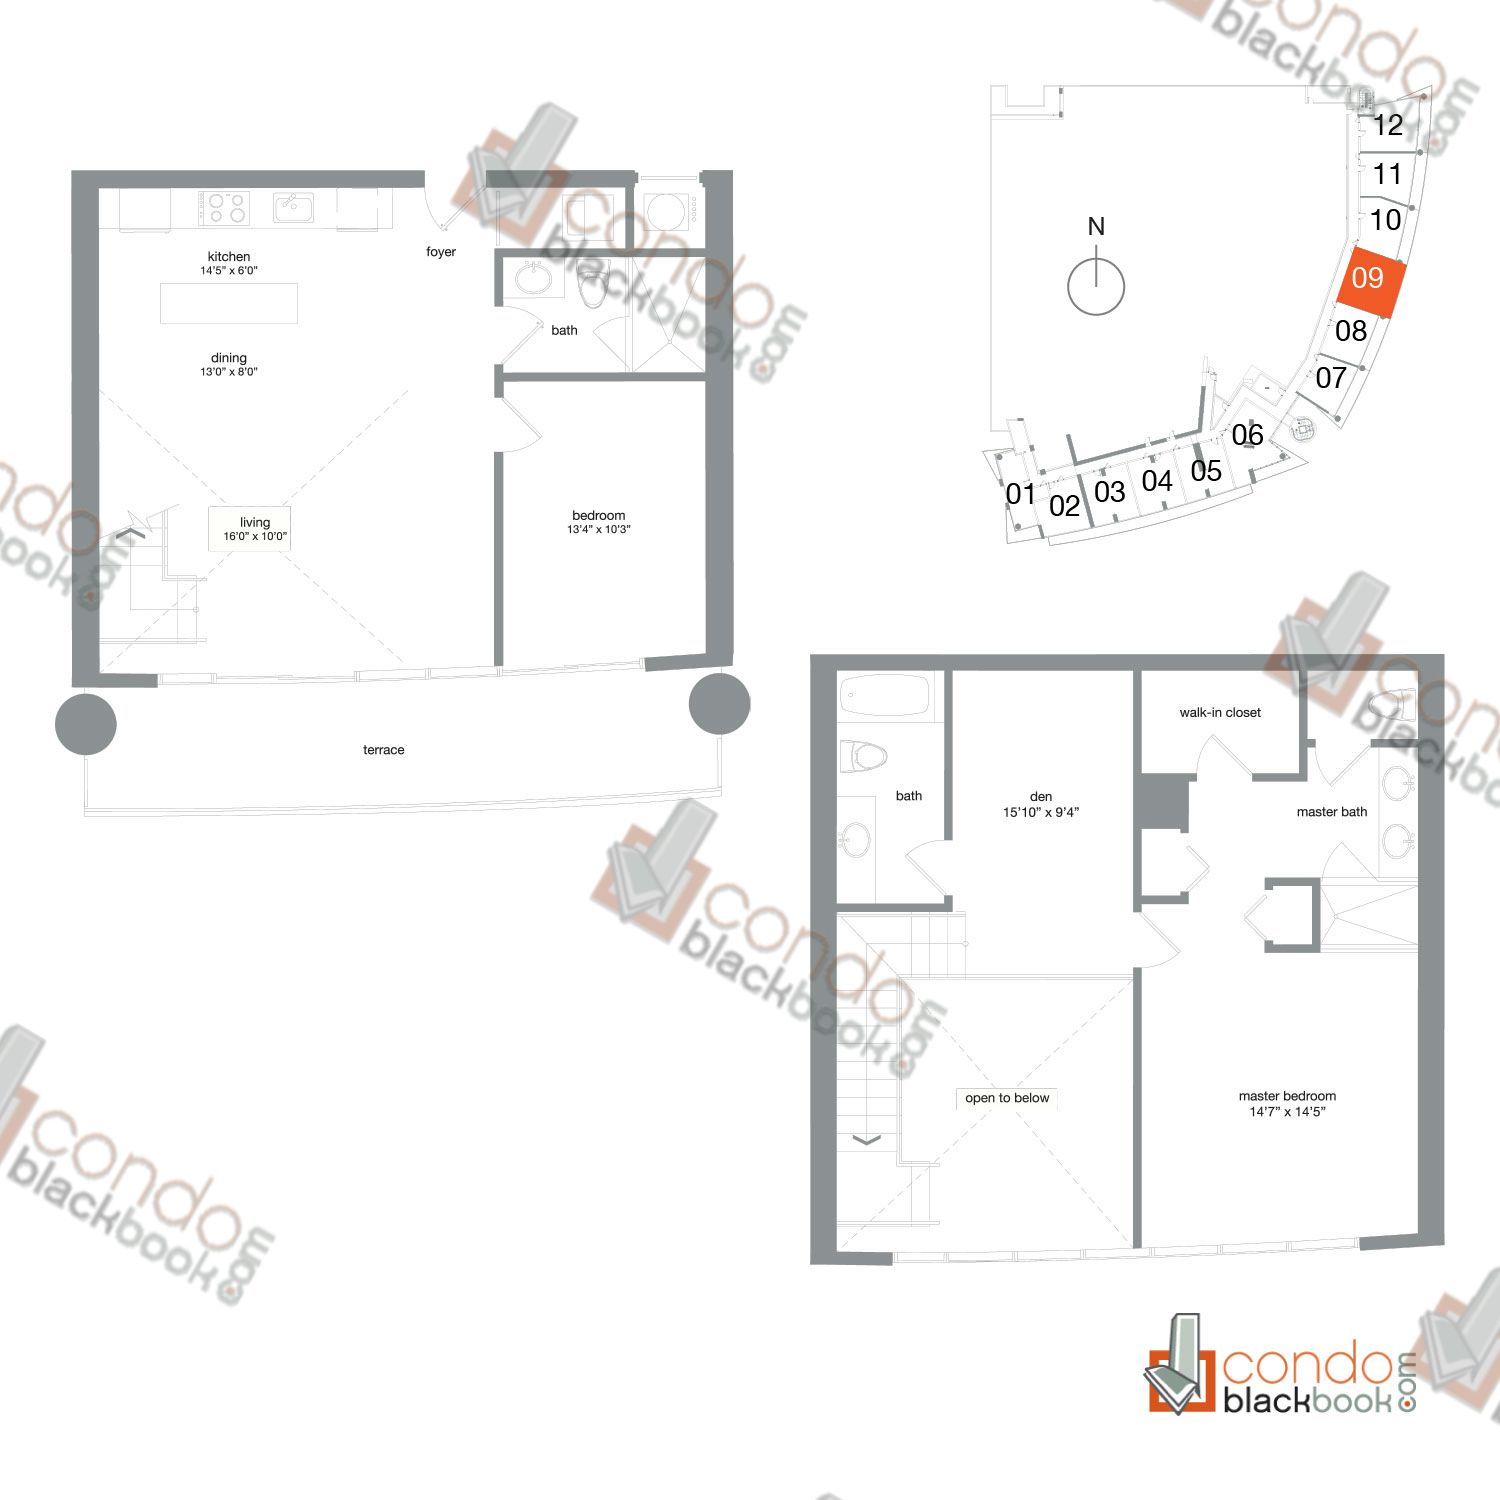 Floor plan for Mint Miami River Miami, model TH09, line 09, 2/3+Den bedrooms, 1,474 sq ft